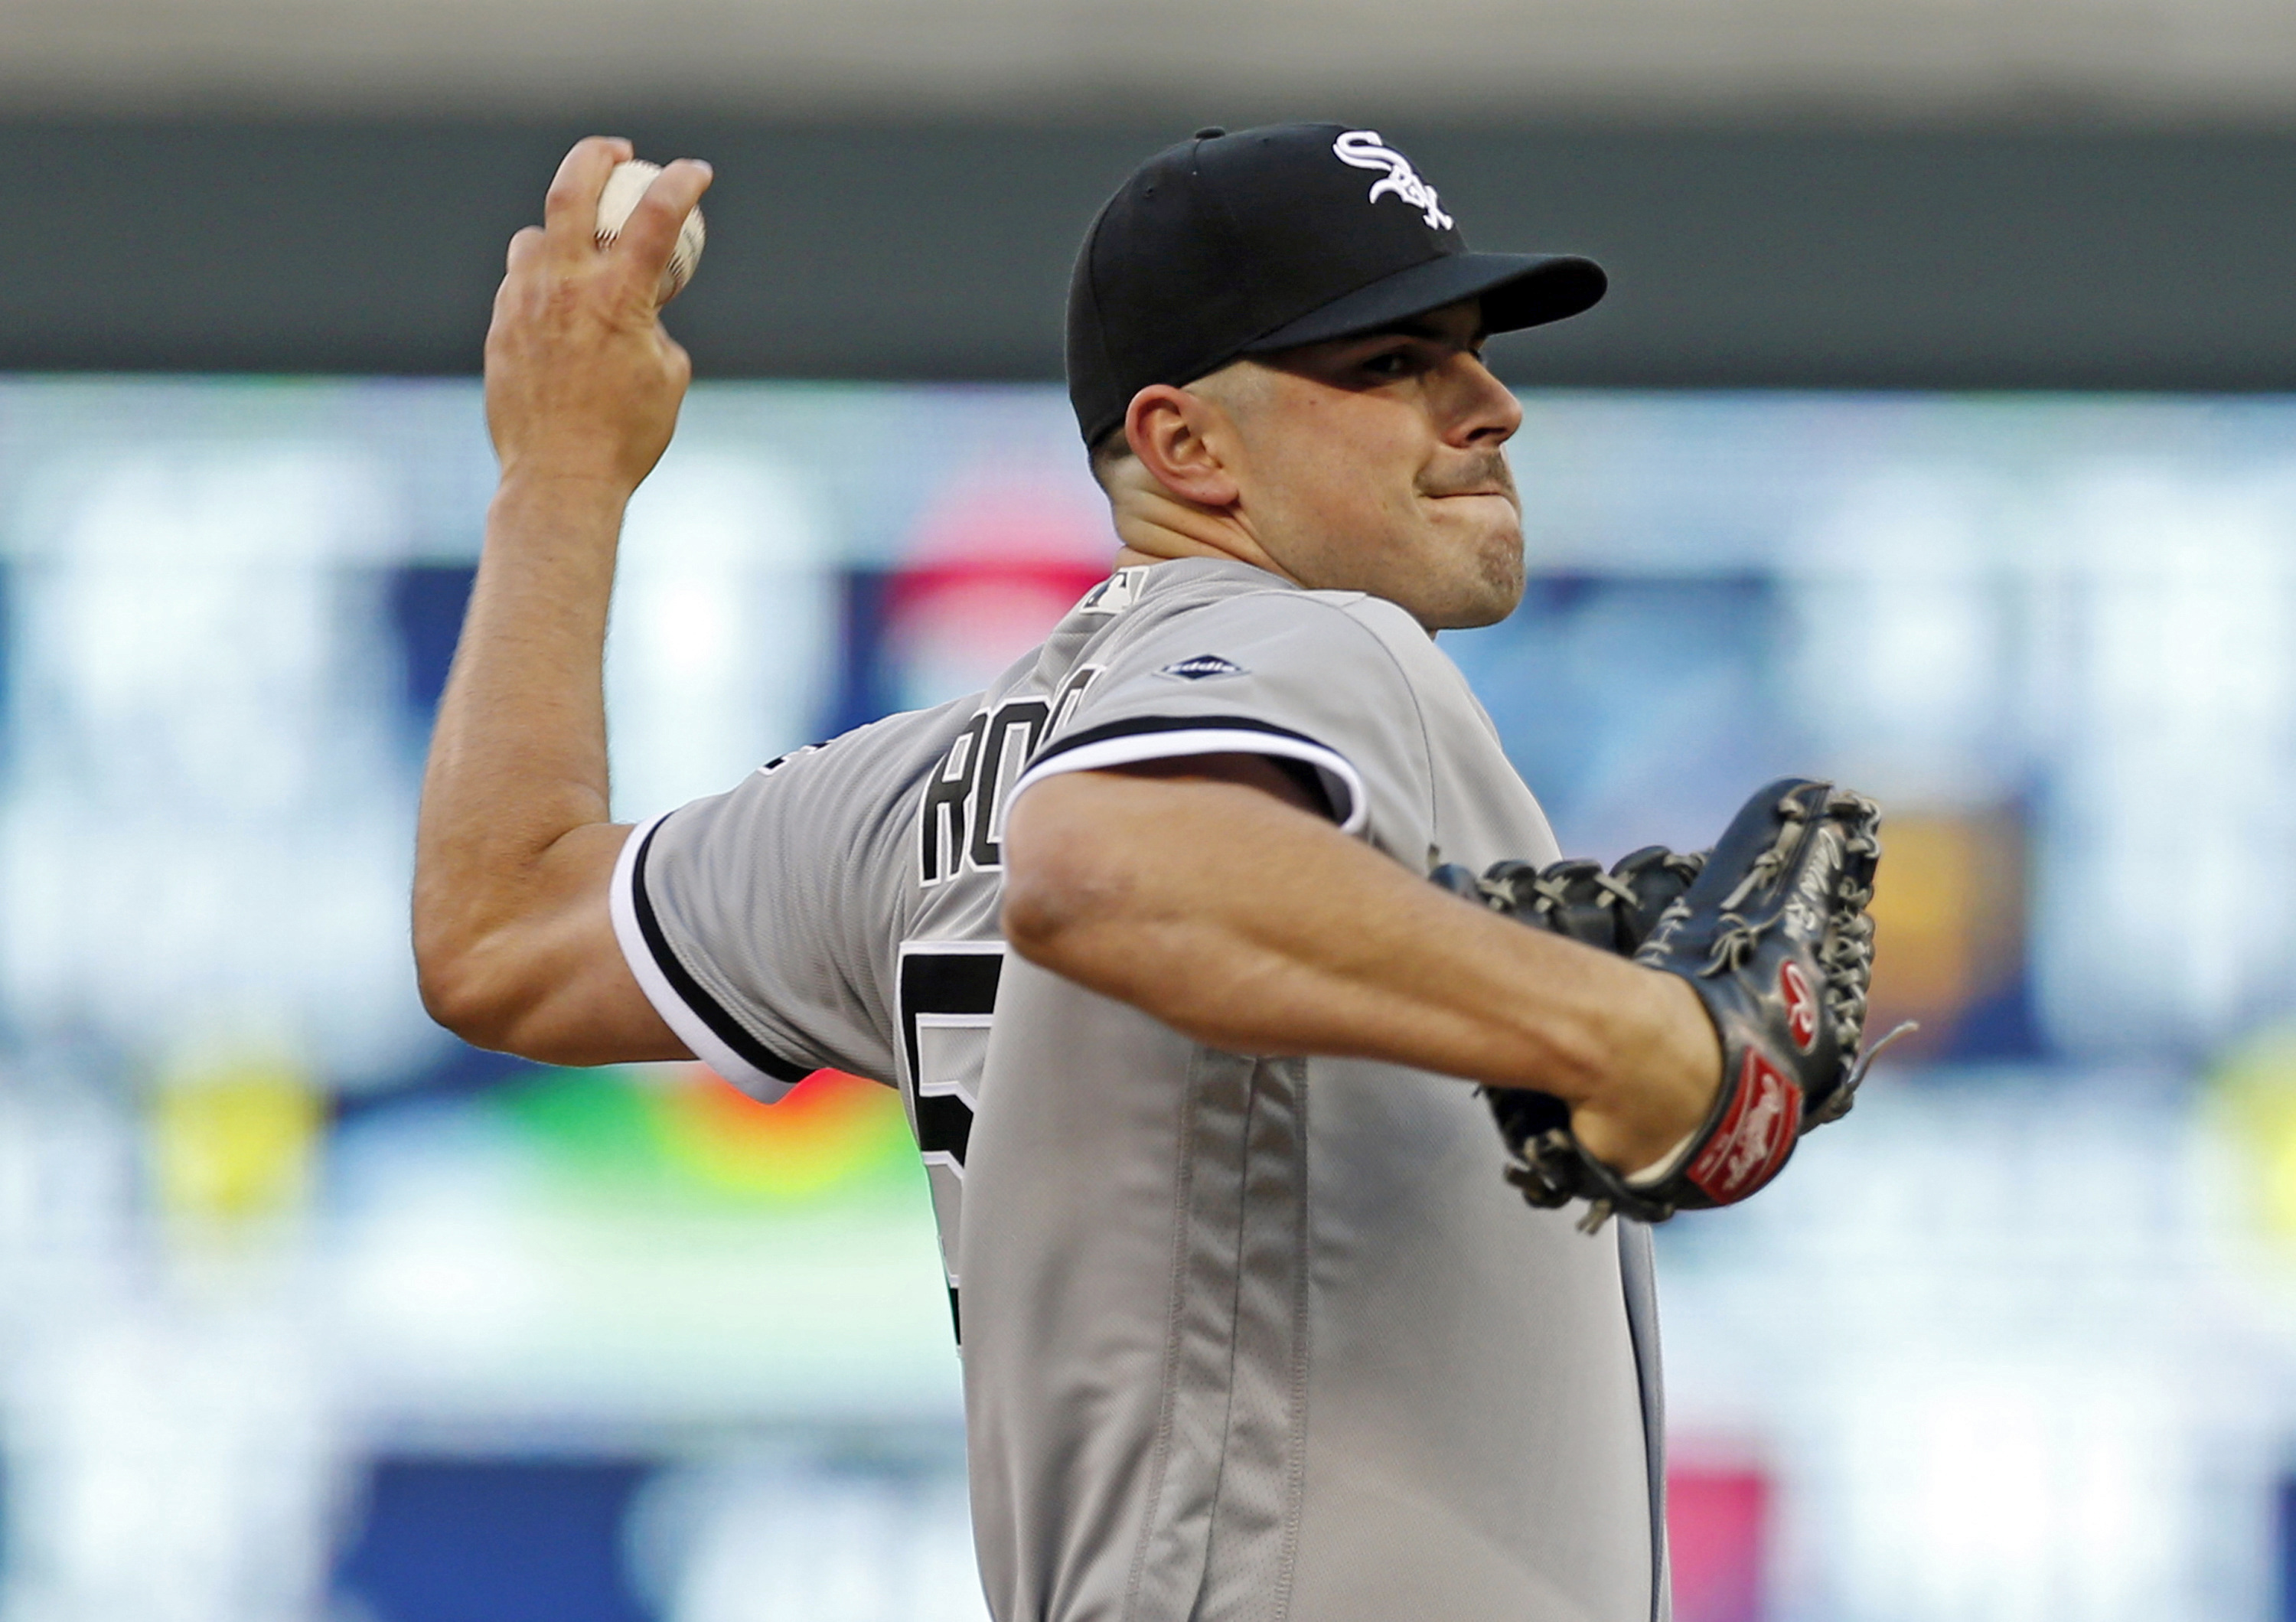 Chicago White Sox pitcher Carlos Rodon throws against the Minnesota Twins in the first inning of a baseball game Wednesday, April 13, 2016, in Minneapolis. (AP Photo/Jim Mone)